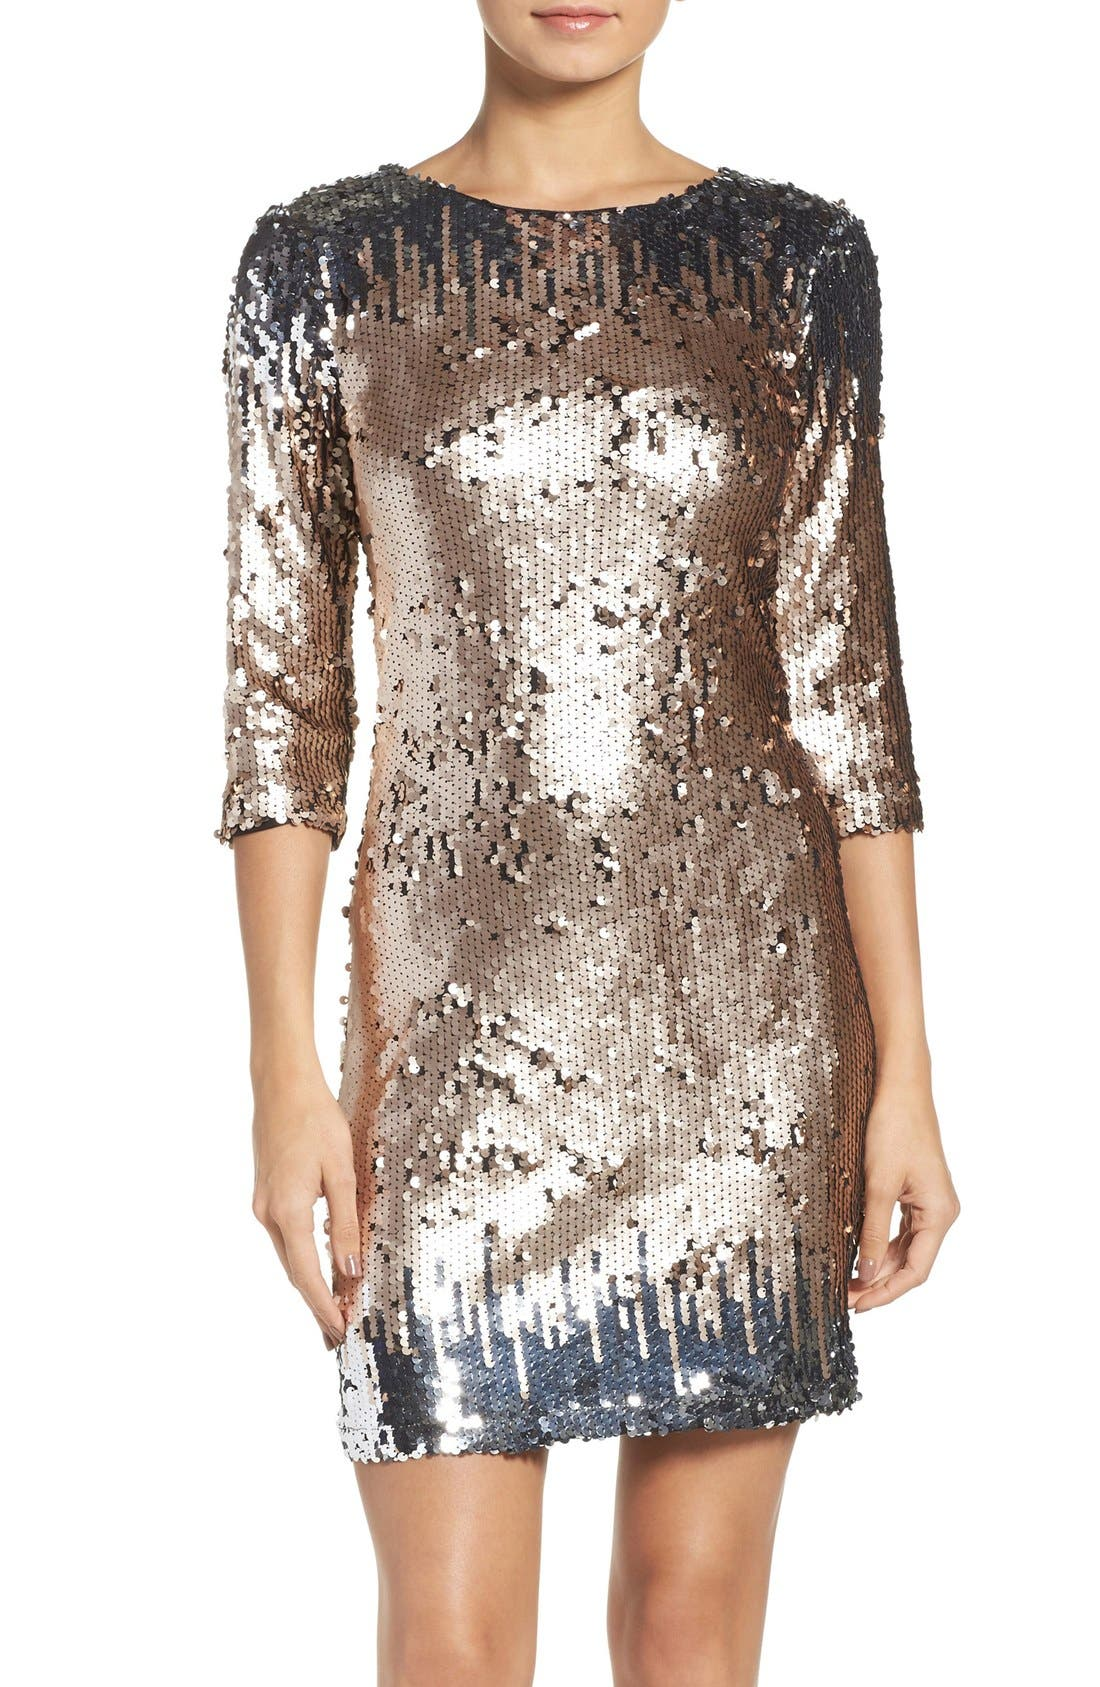 Alternate Image 1 Selected - BB Dakota Elise Sequin Body-Con Dress